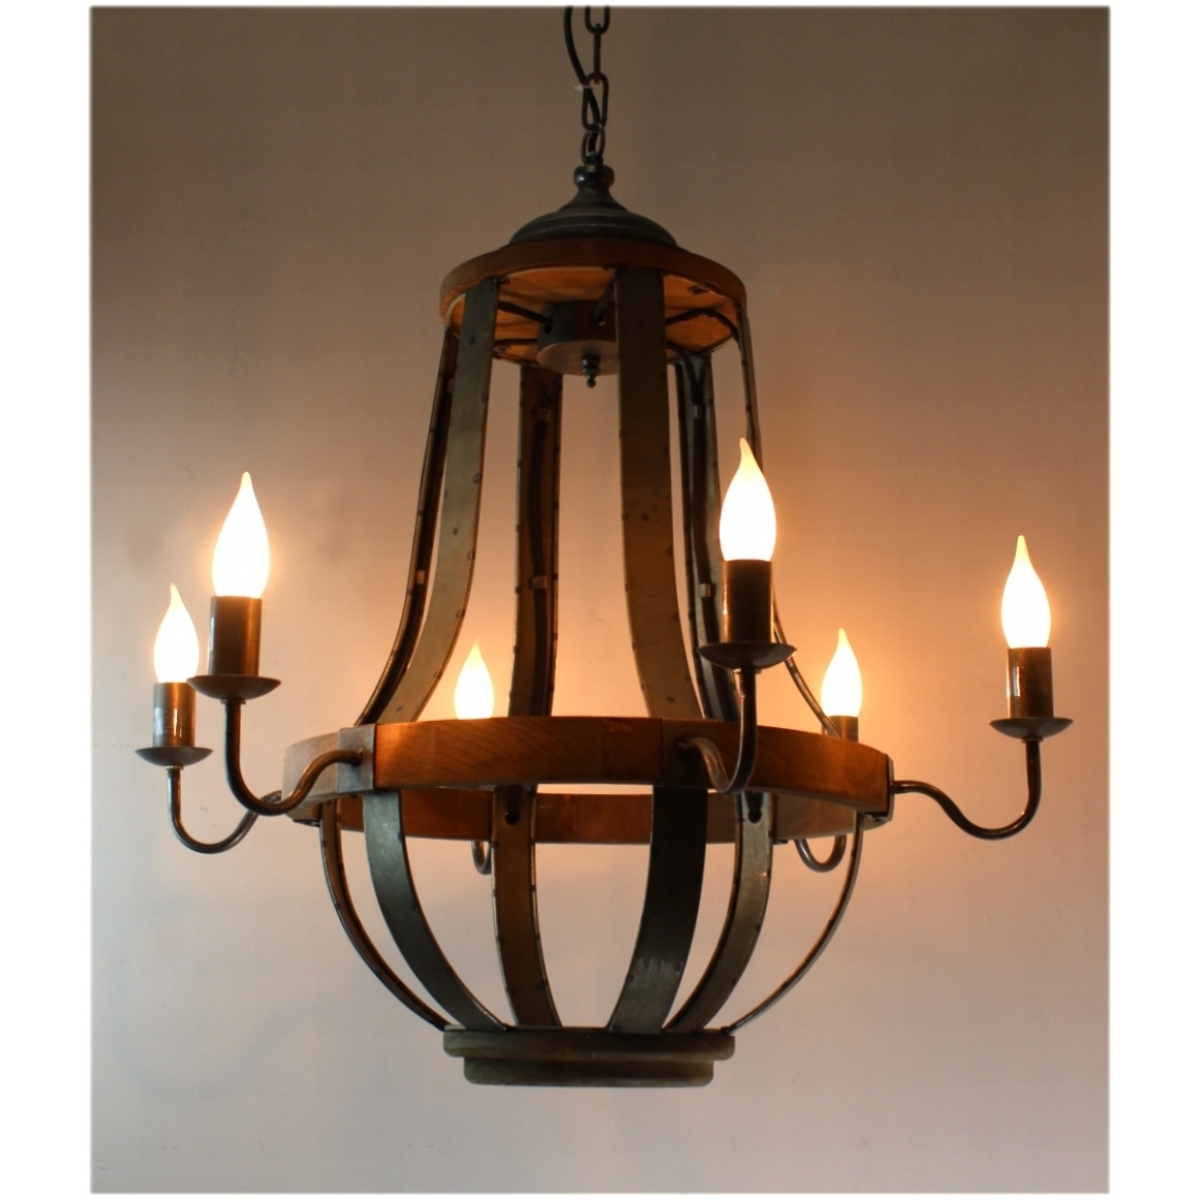 Latest $579 Iron Strap And Aged Wood Chandelier French Country Vintage Inside Vintage French Chandeliers (View 15 of 20)